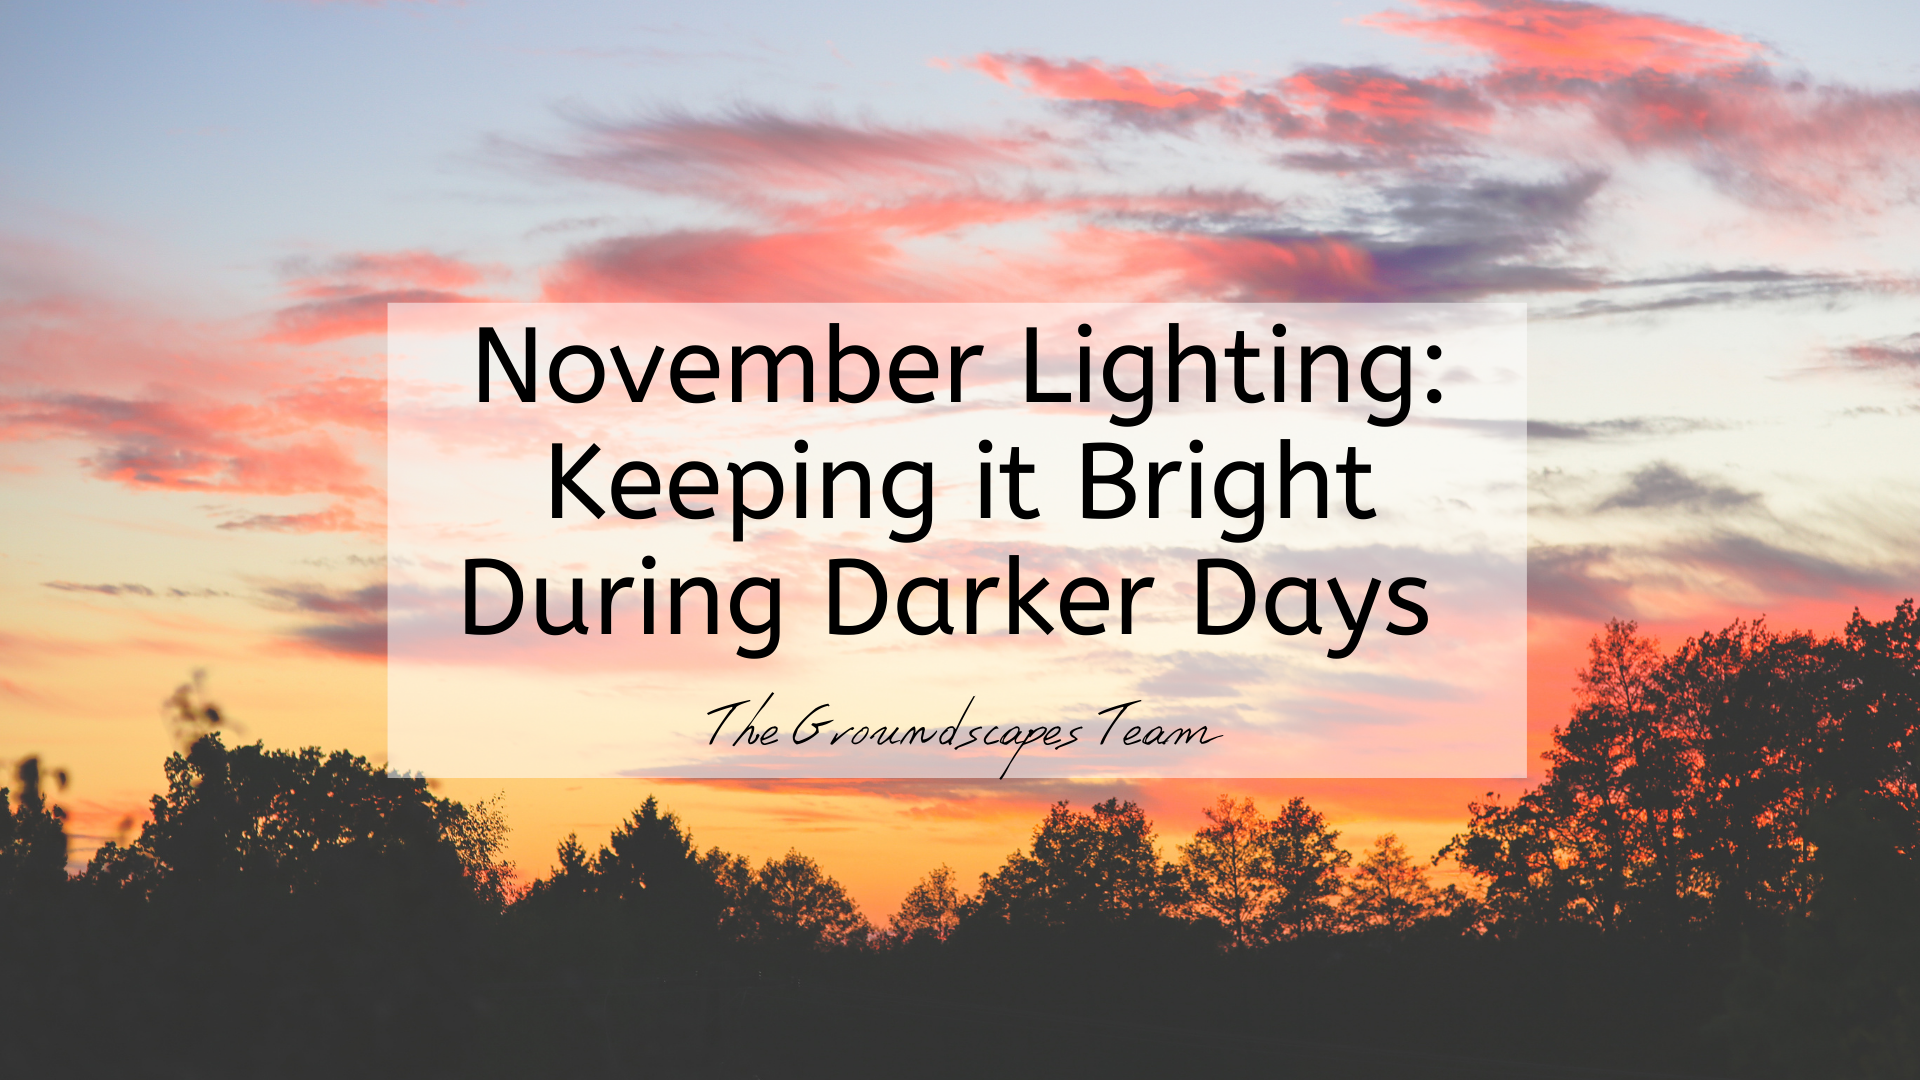 November Lighting: Keeping it Bright During Darker Days